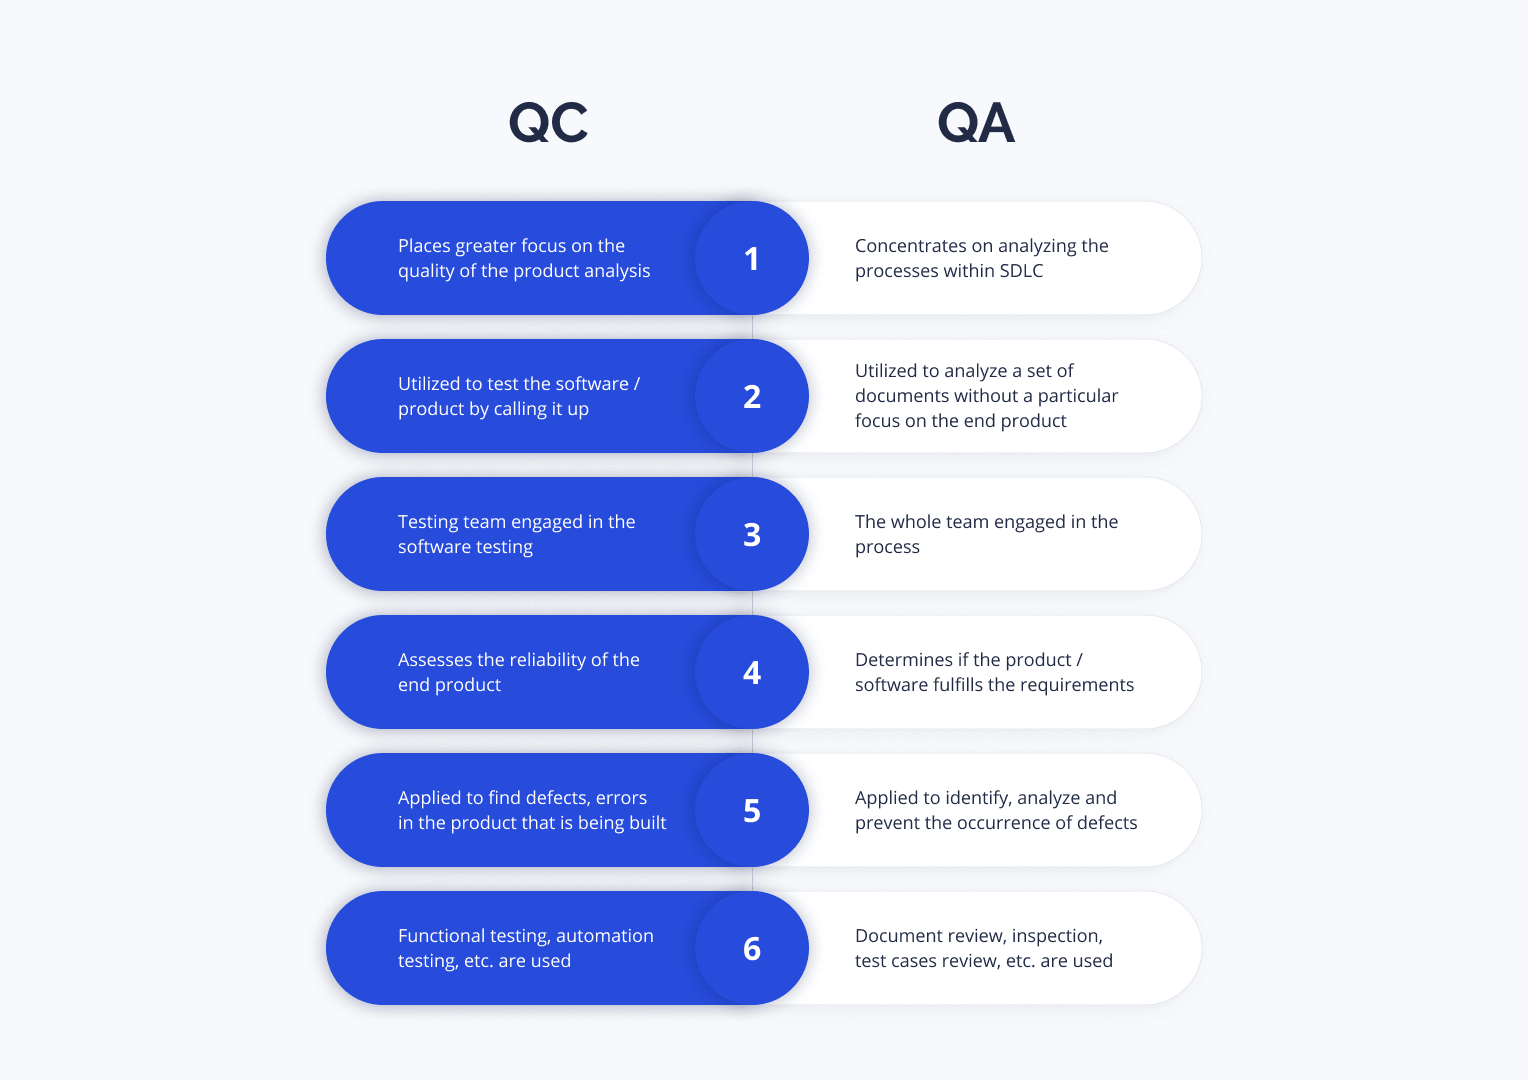 What is QA and QC